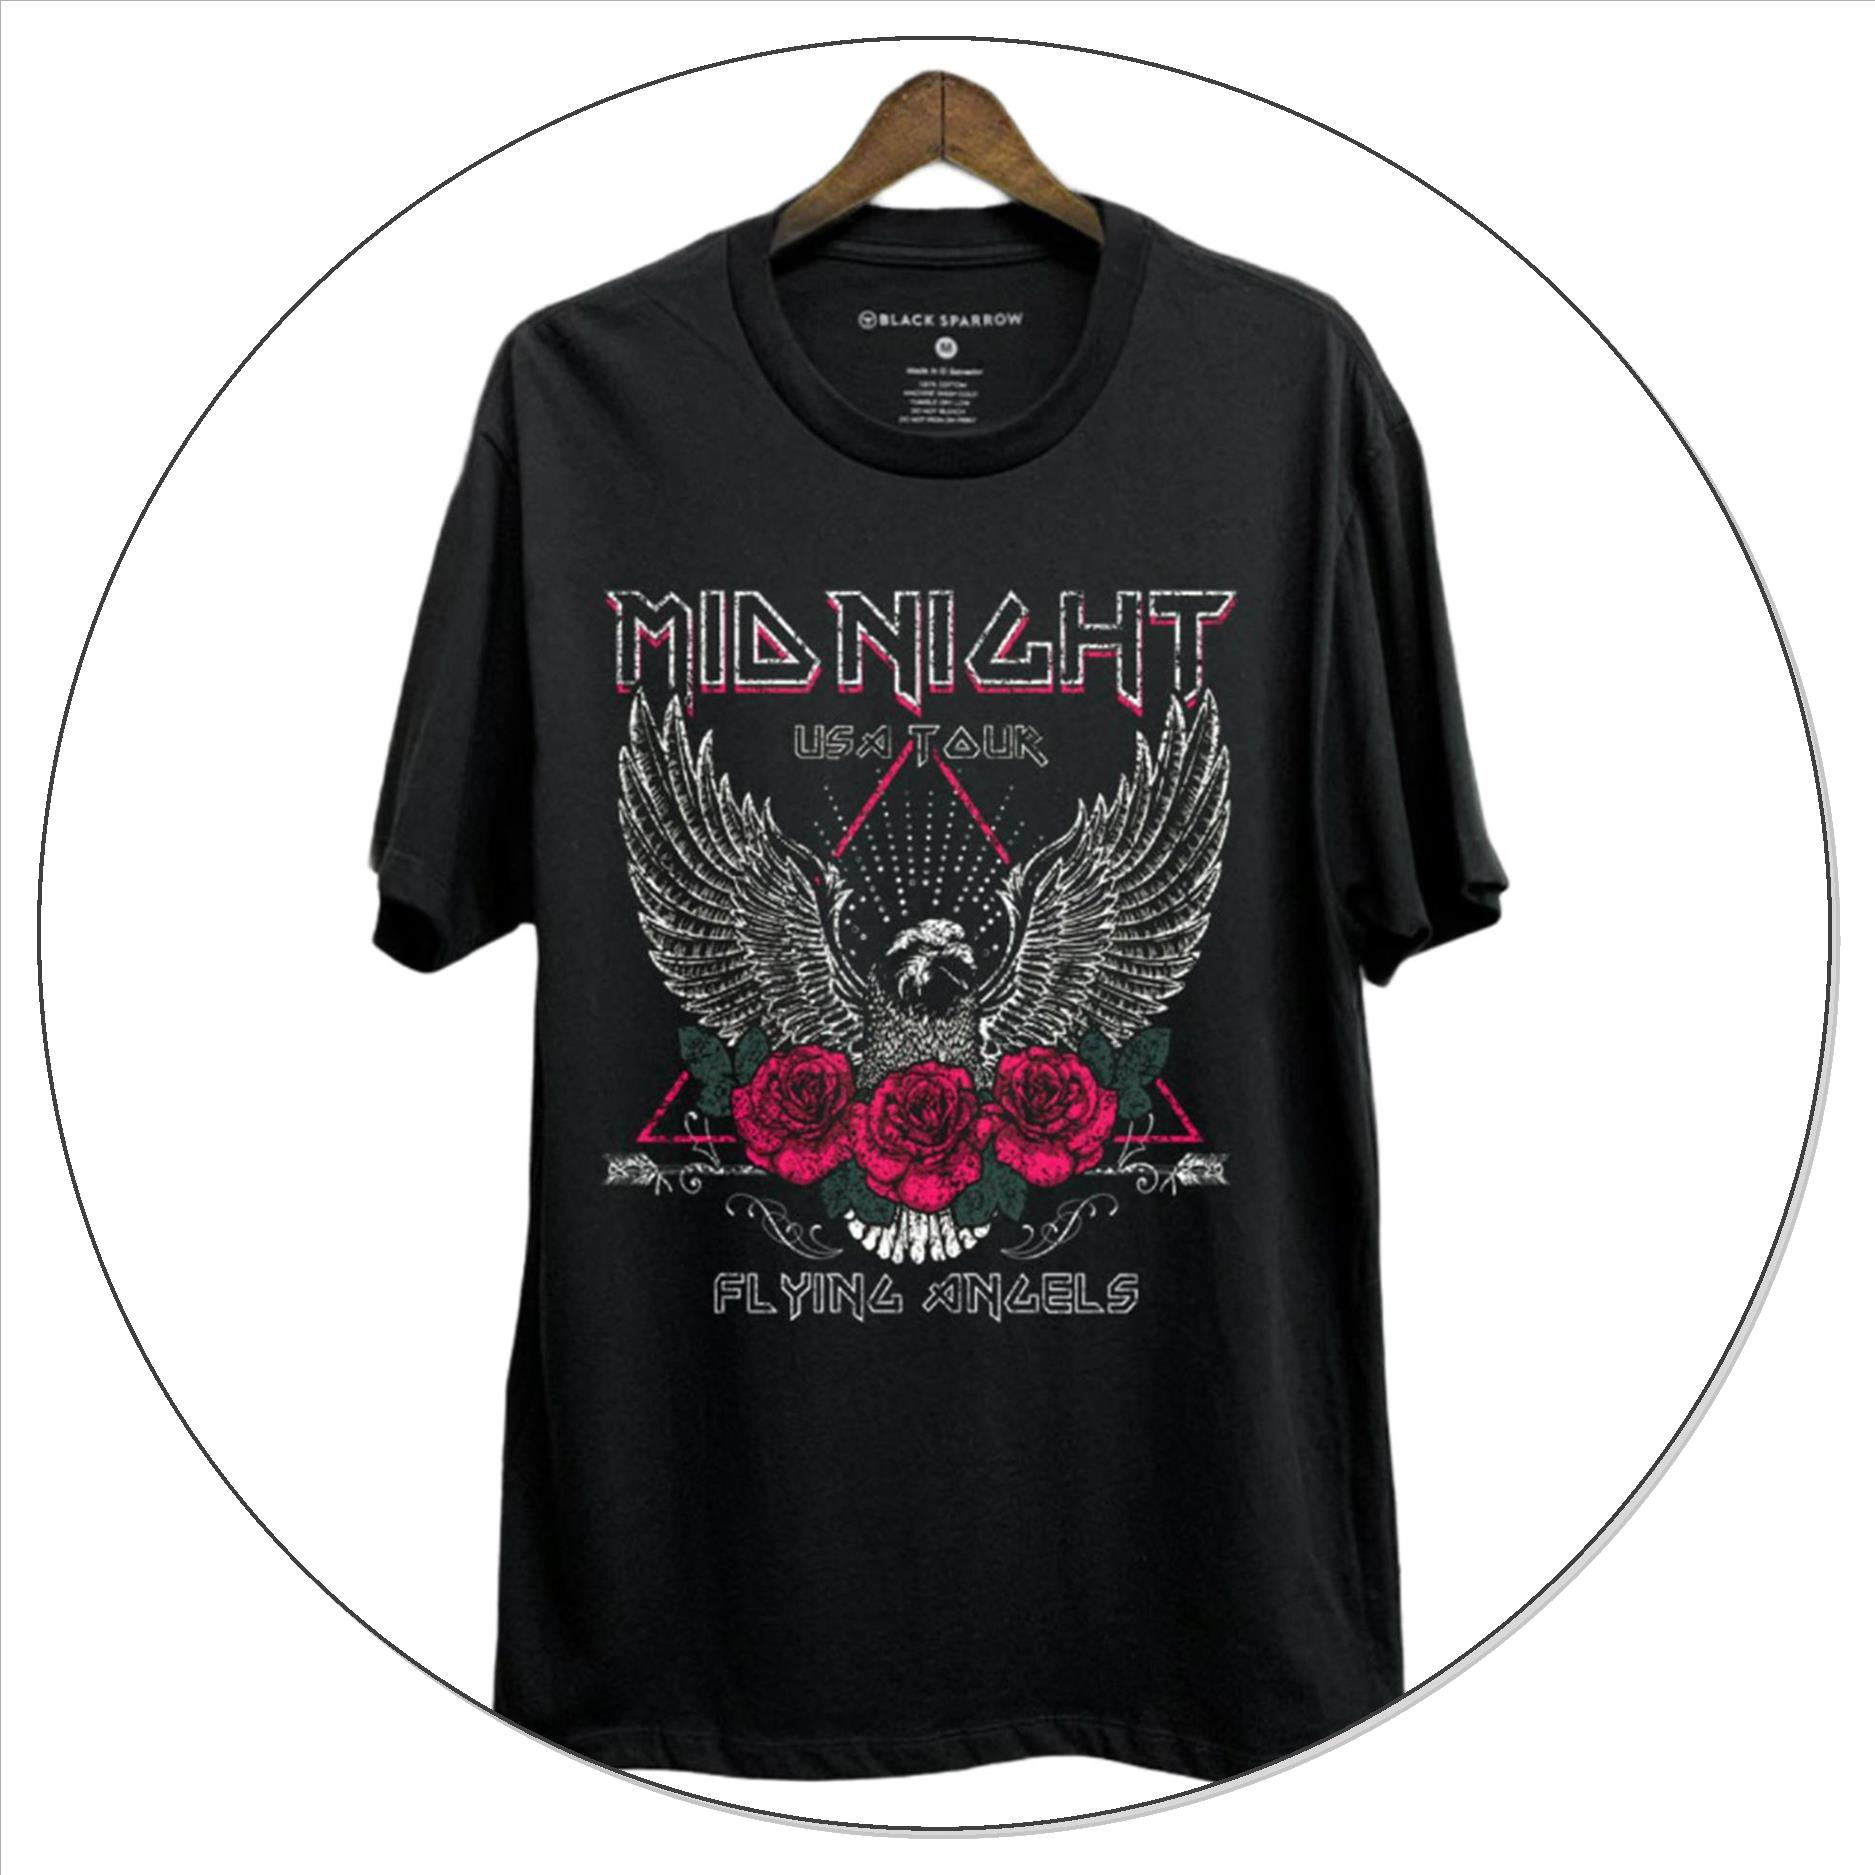 Midnight USA Tour Short Sleeve Graphic Top - Black